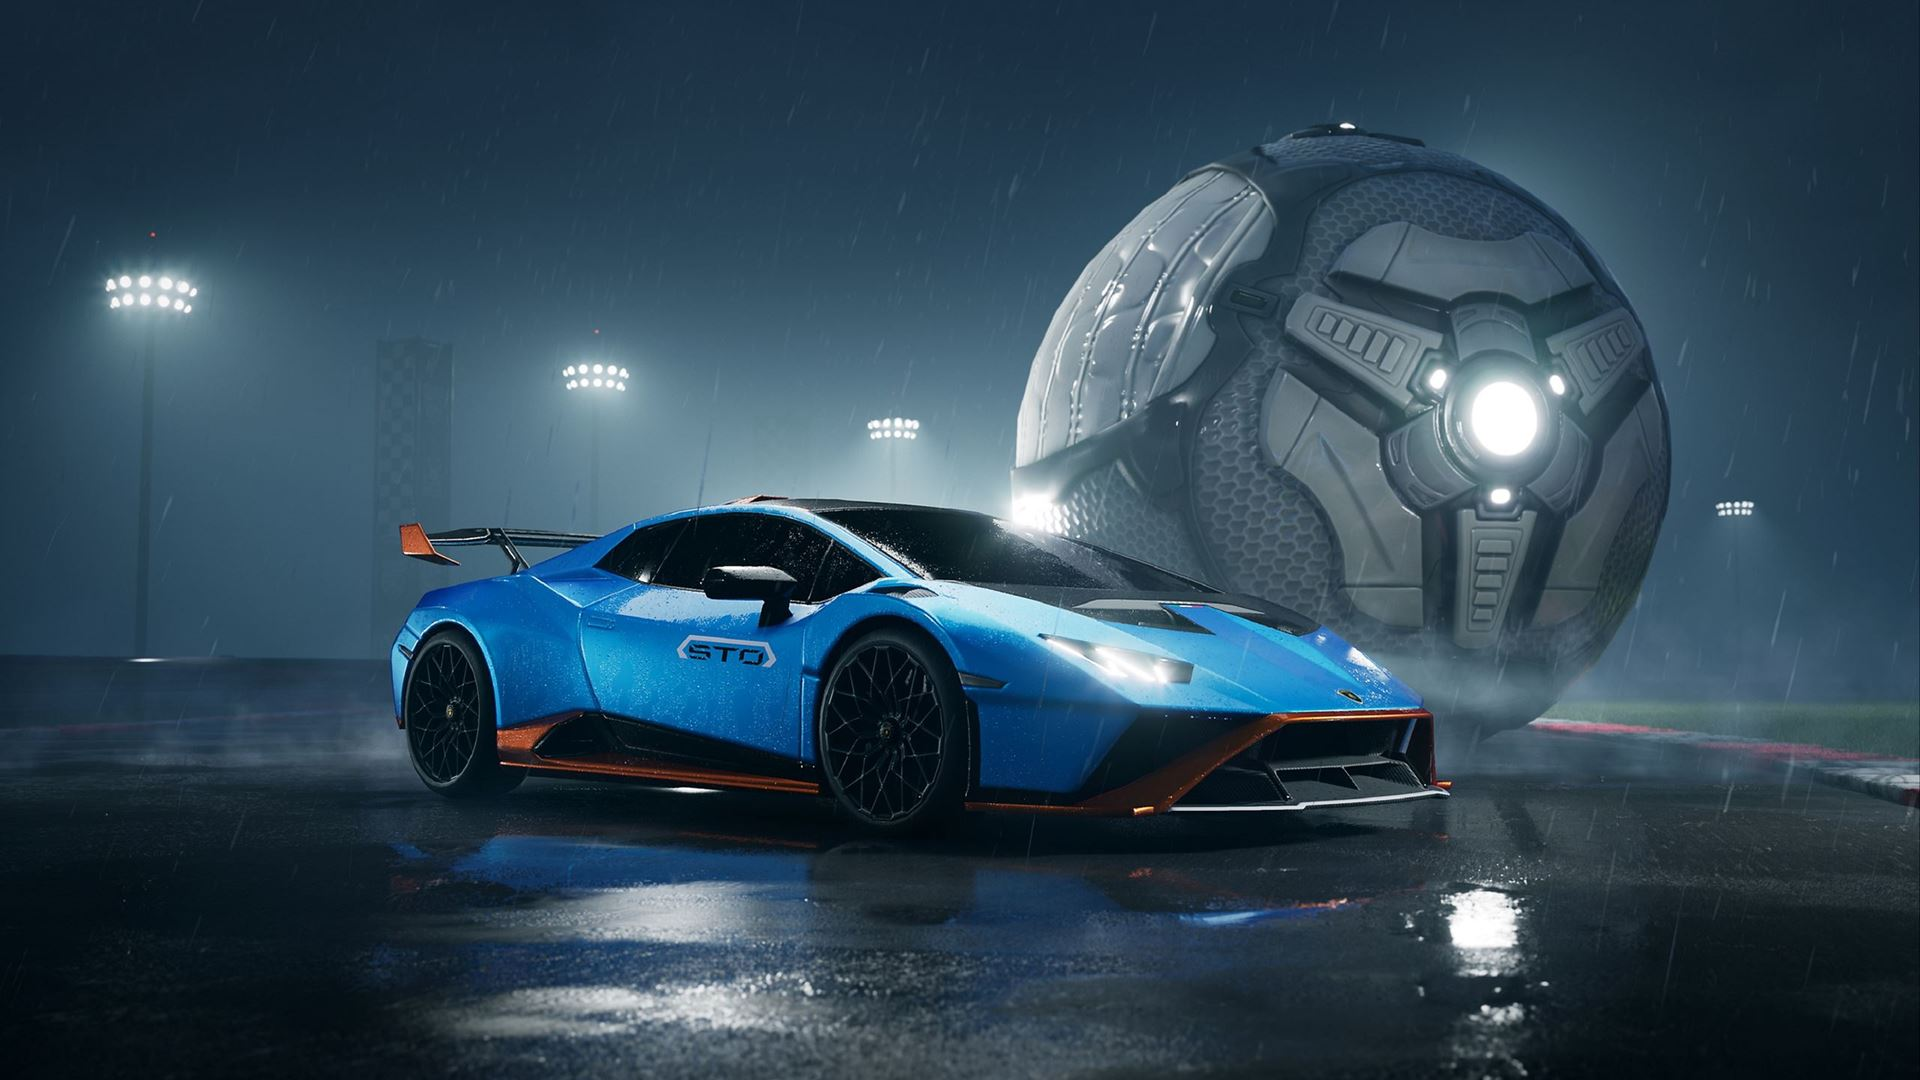 Lamborghini debuts in the Rocket League video game with the Huracán STO - Image 1